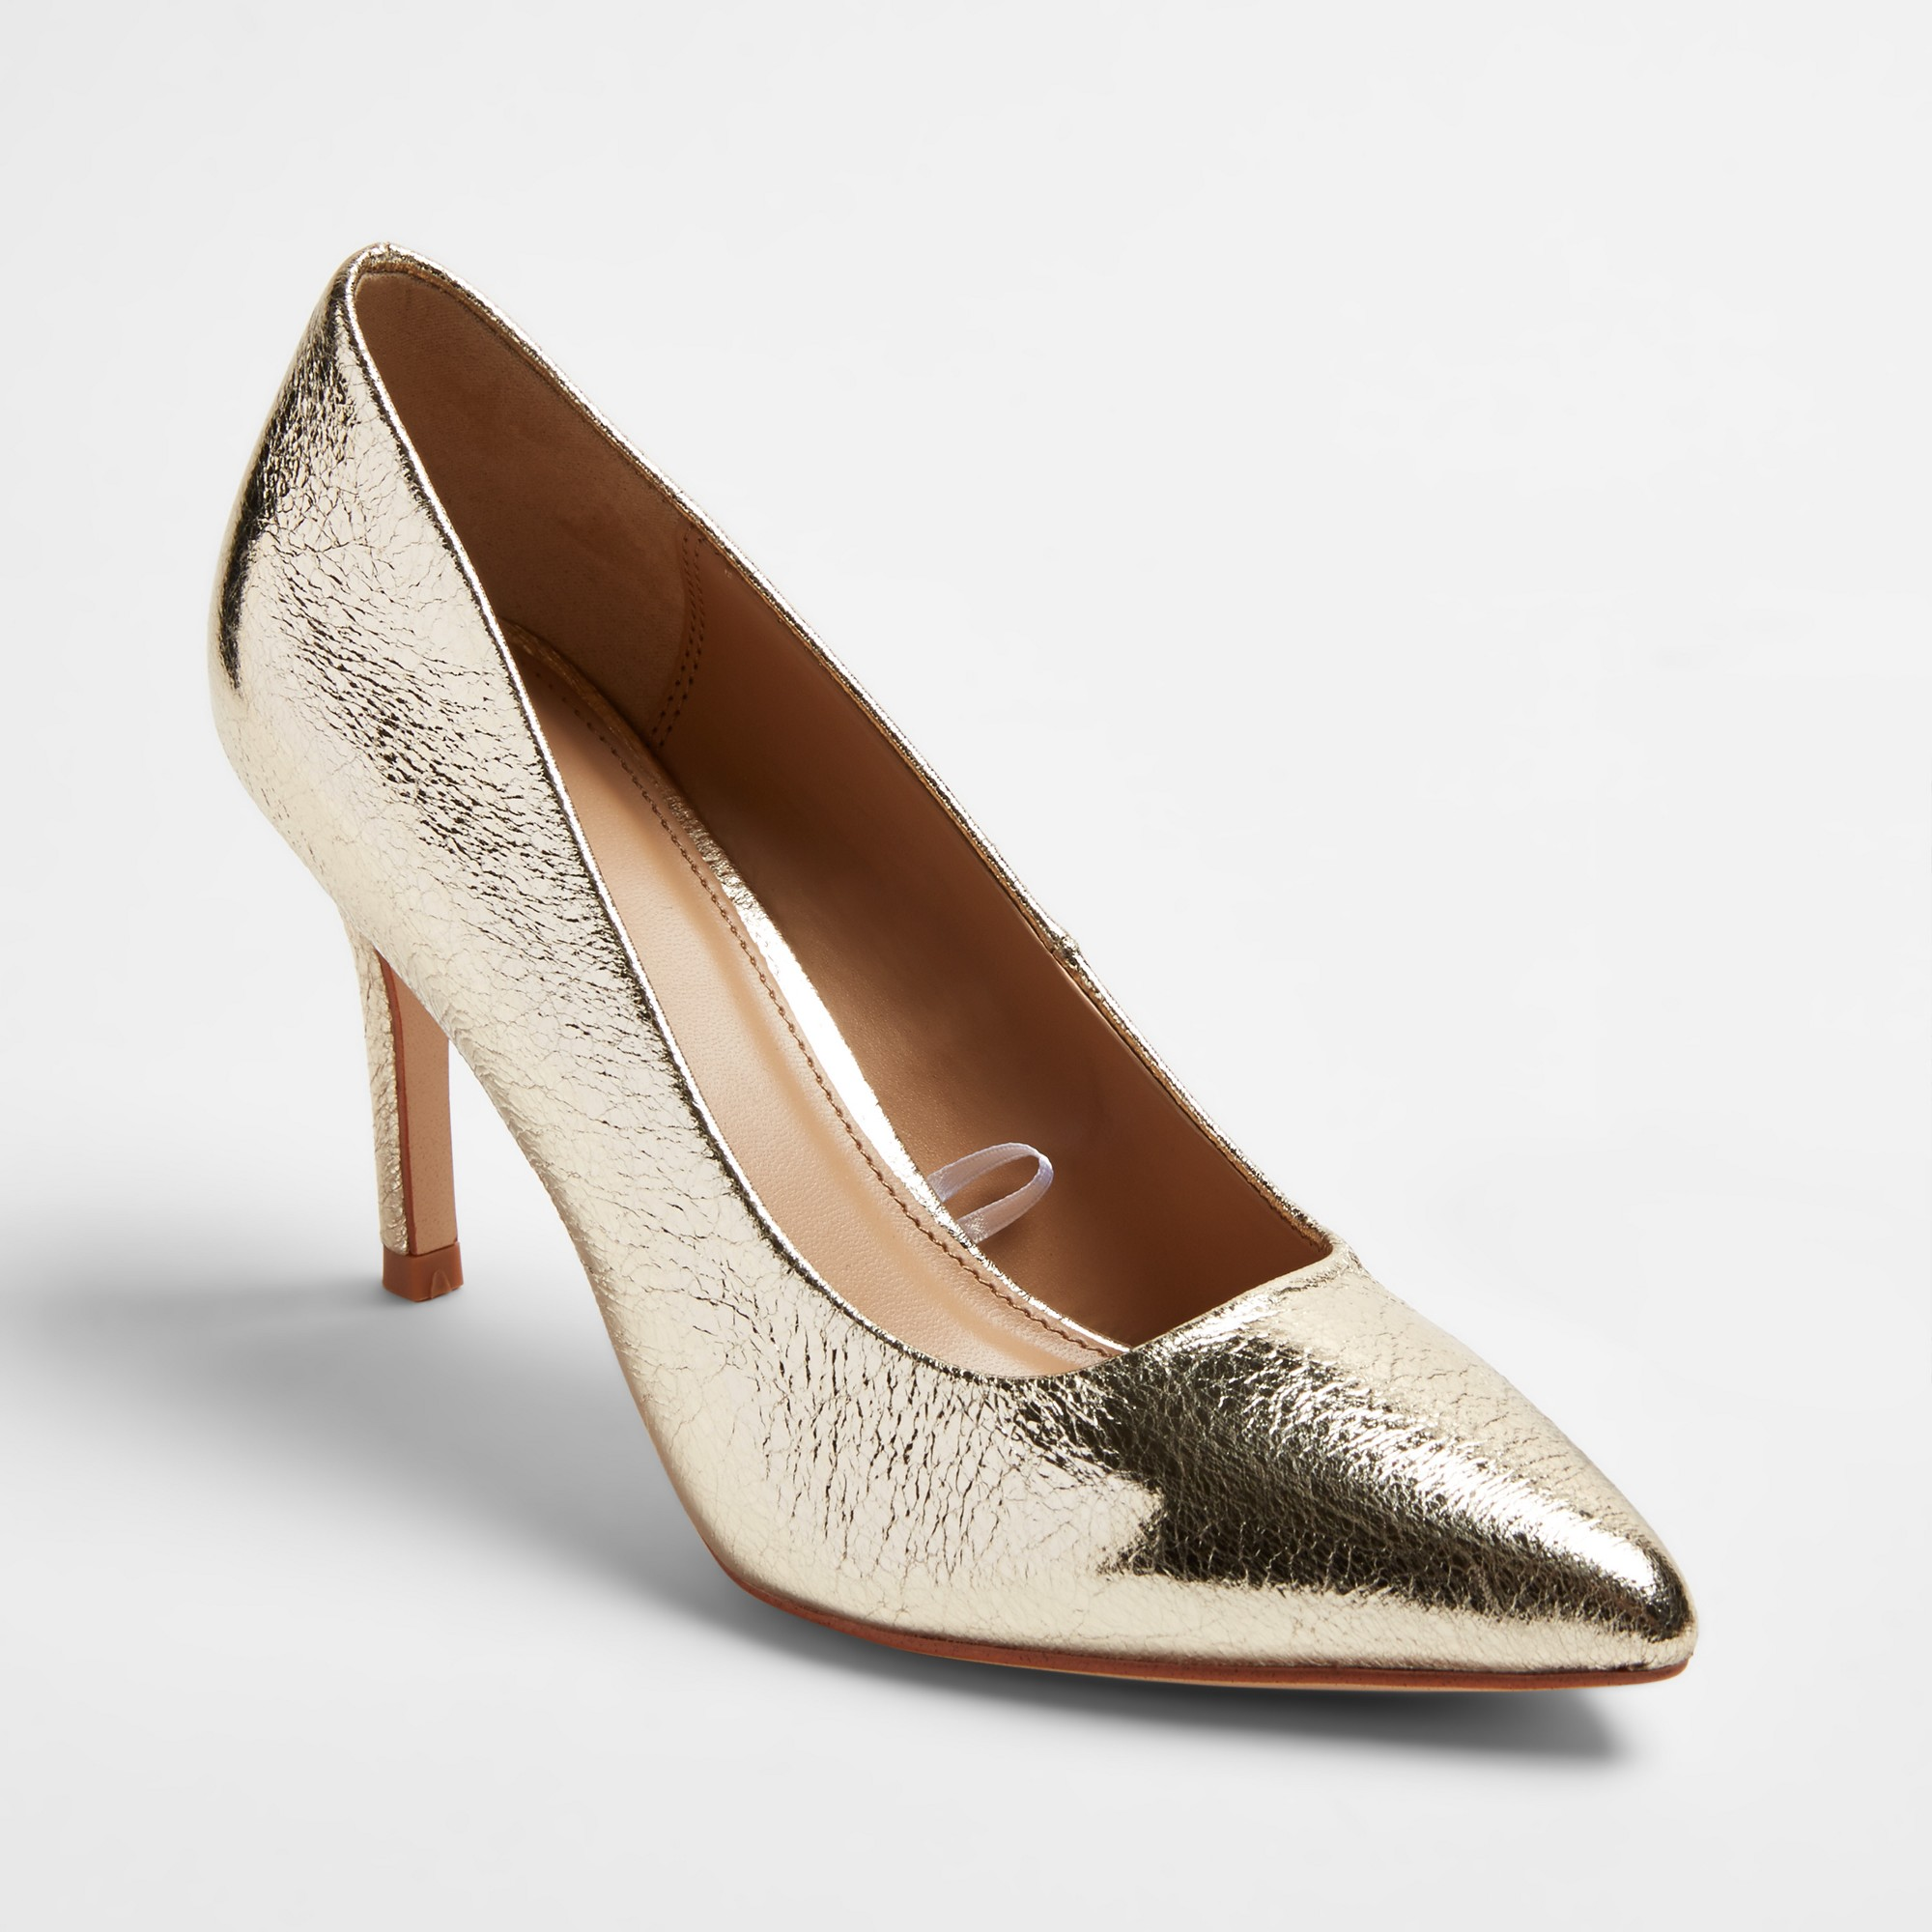 7bf9f25eaae5 Women s Gemma Wide Width Pointed Toe Pumps - A New Day Gold 8.5W